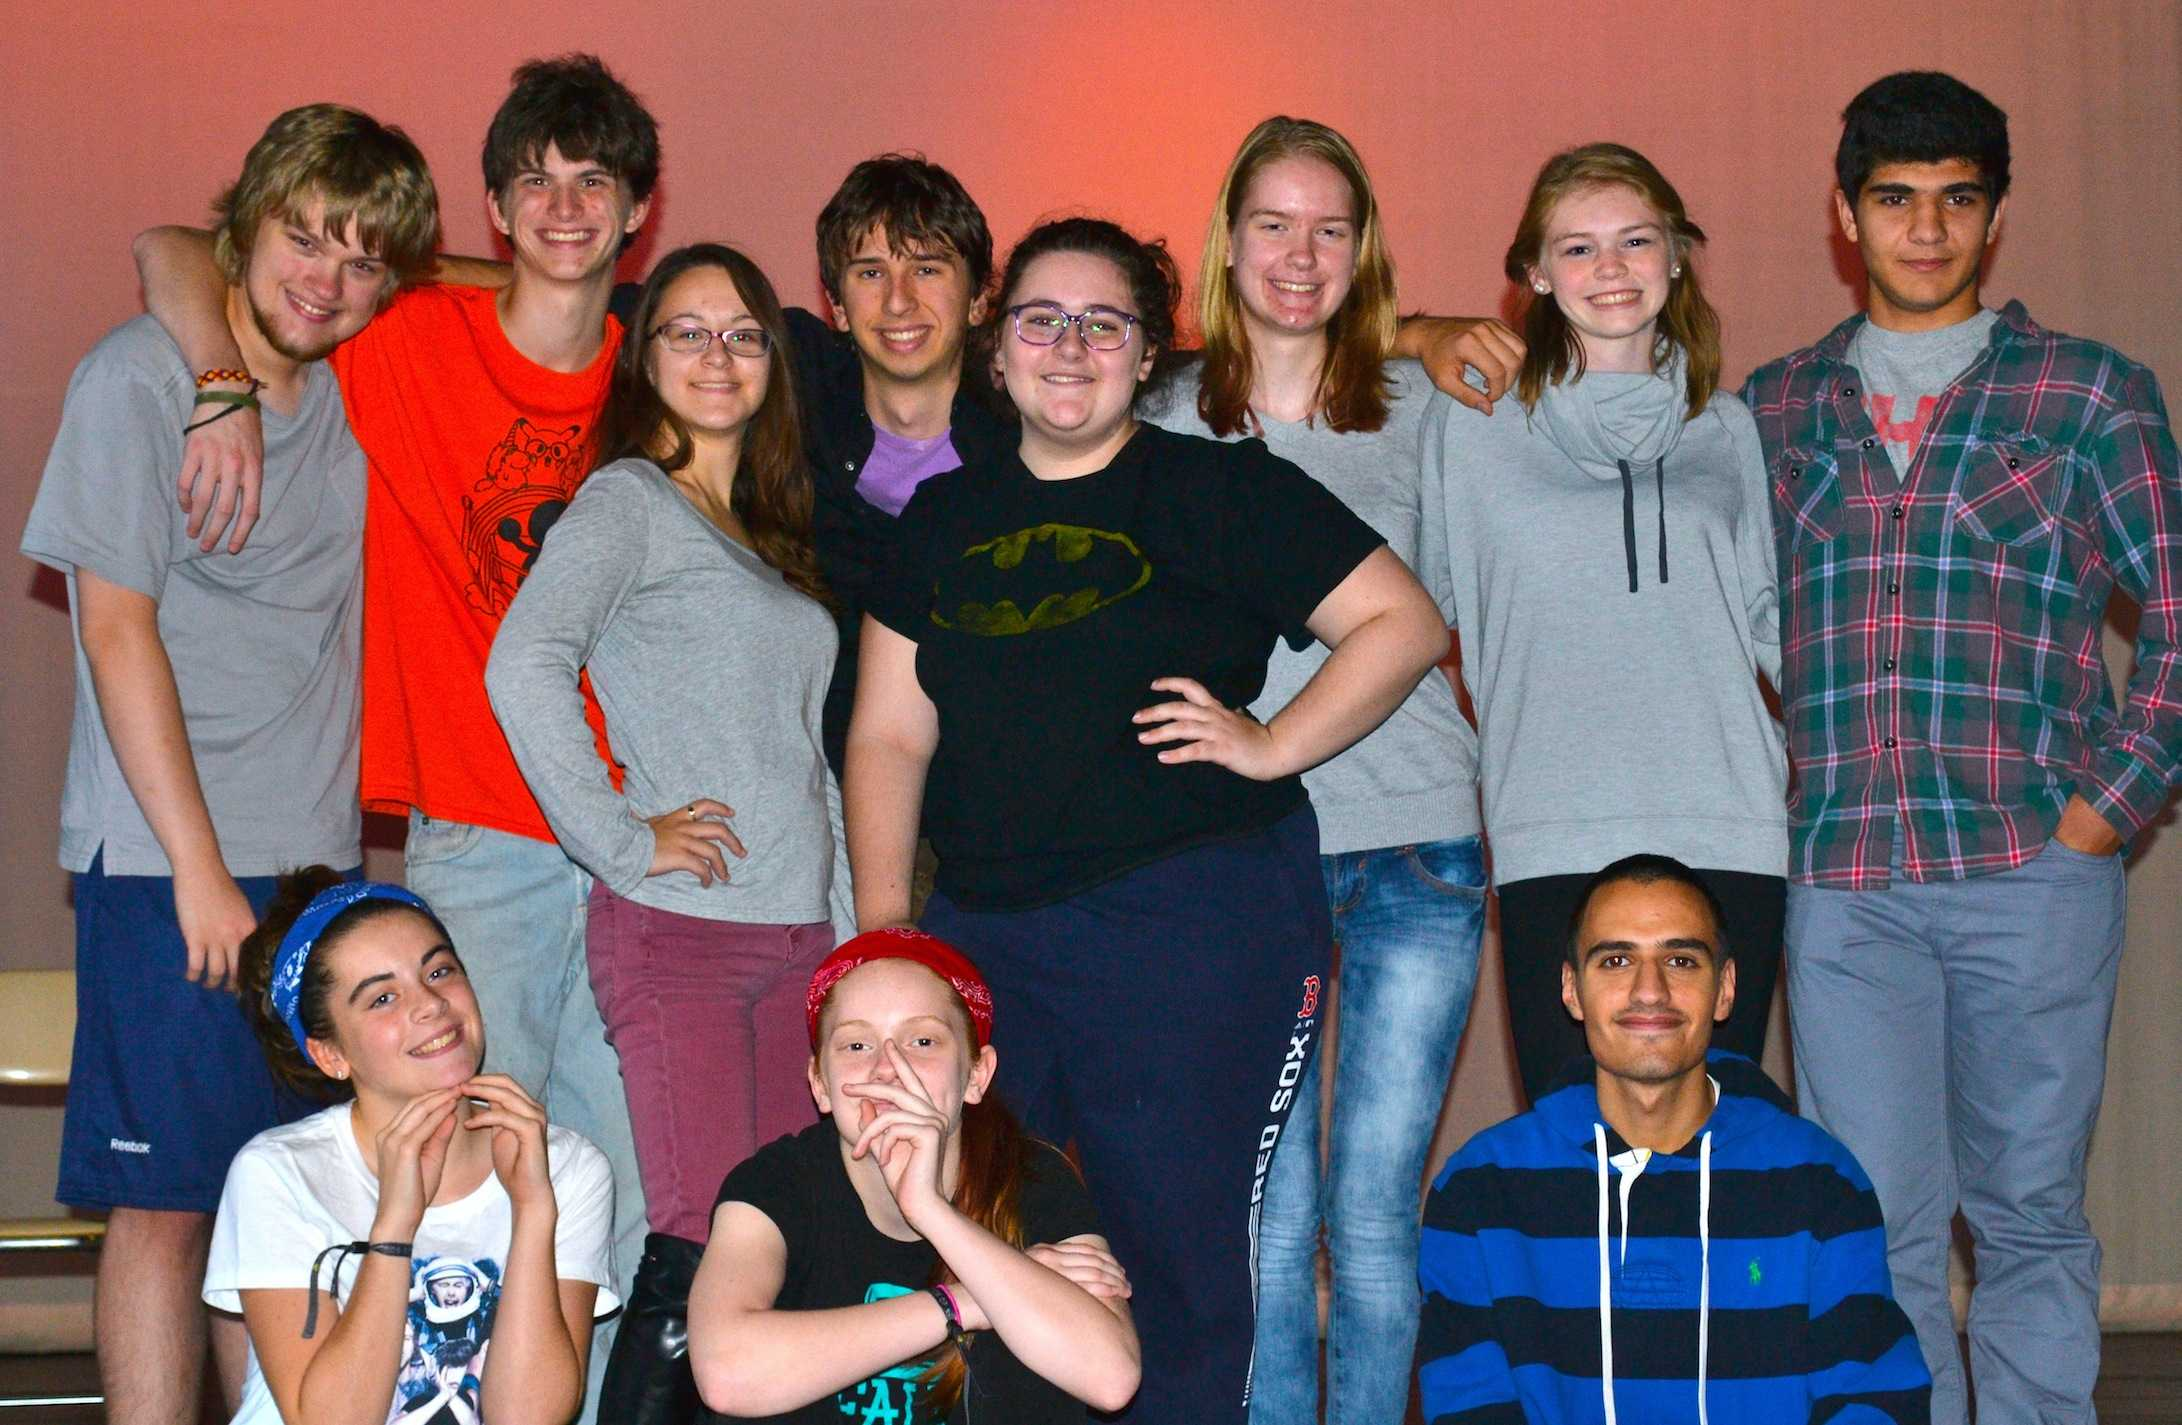 """The student cast of """"All In The Timing"""" takes a break from rehearsal to pose. The show will be performed at Watertown High School on Nov. 5-6 at 7:30 p.m."""